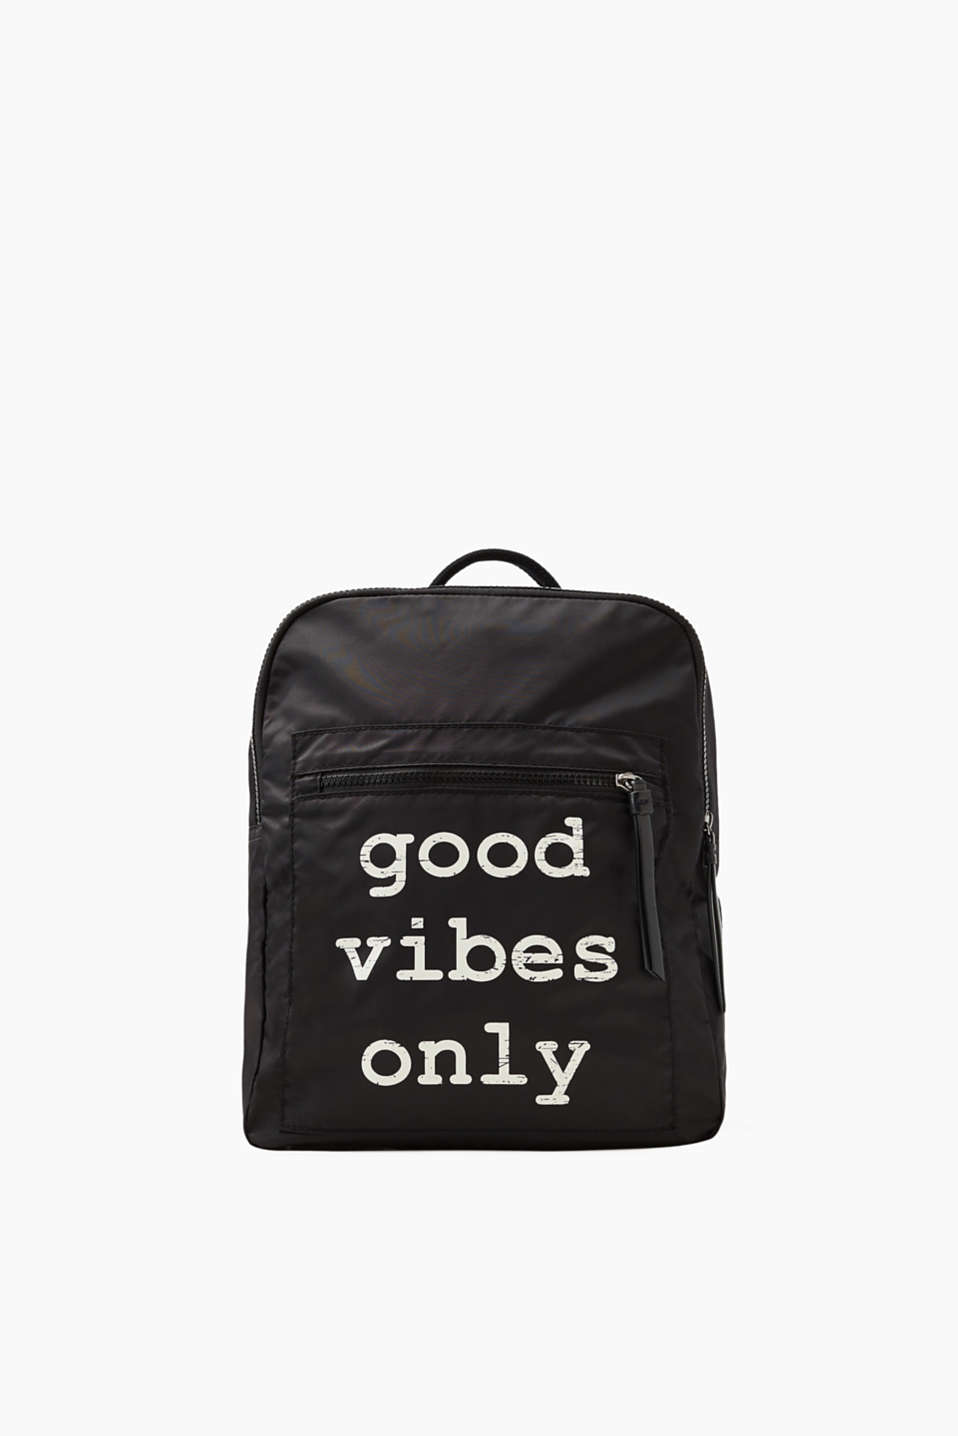 Good vibes only! This rucksack impresses with its lightweight nylon and cool statement.